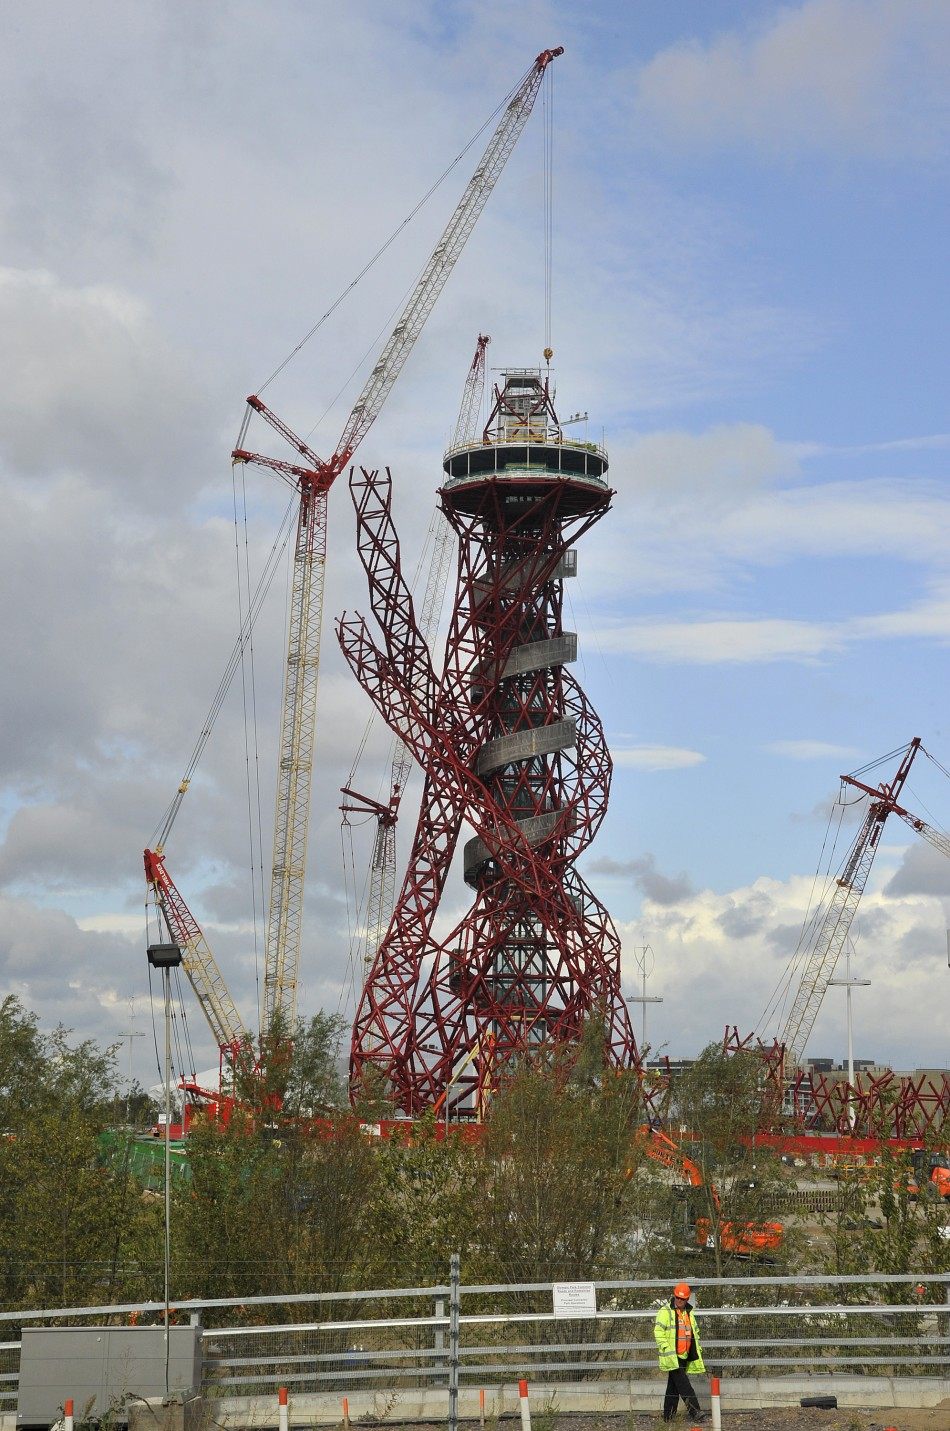 A construction worker passes near the Anish Kapoor-designed ArcelorMittal Orbit tower at the Olympic site at Stratford in east London, on October 7, 2011. The tower will be Britains largest piece of public art and is intended to form part of the legacy o